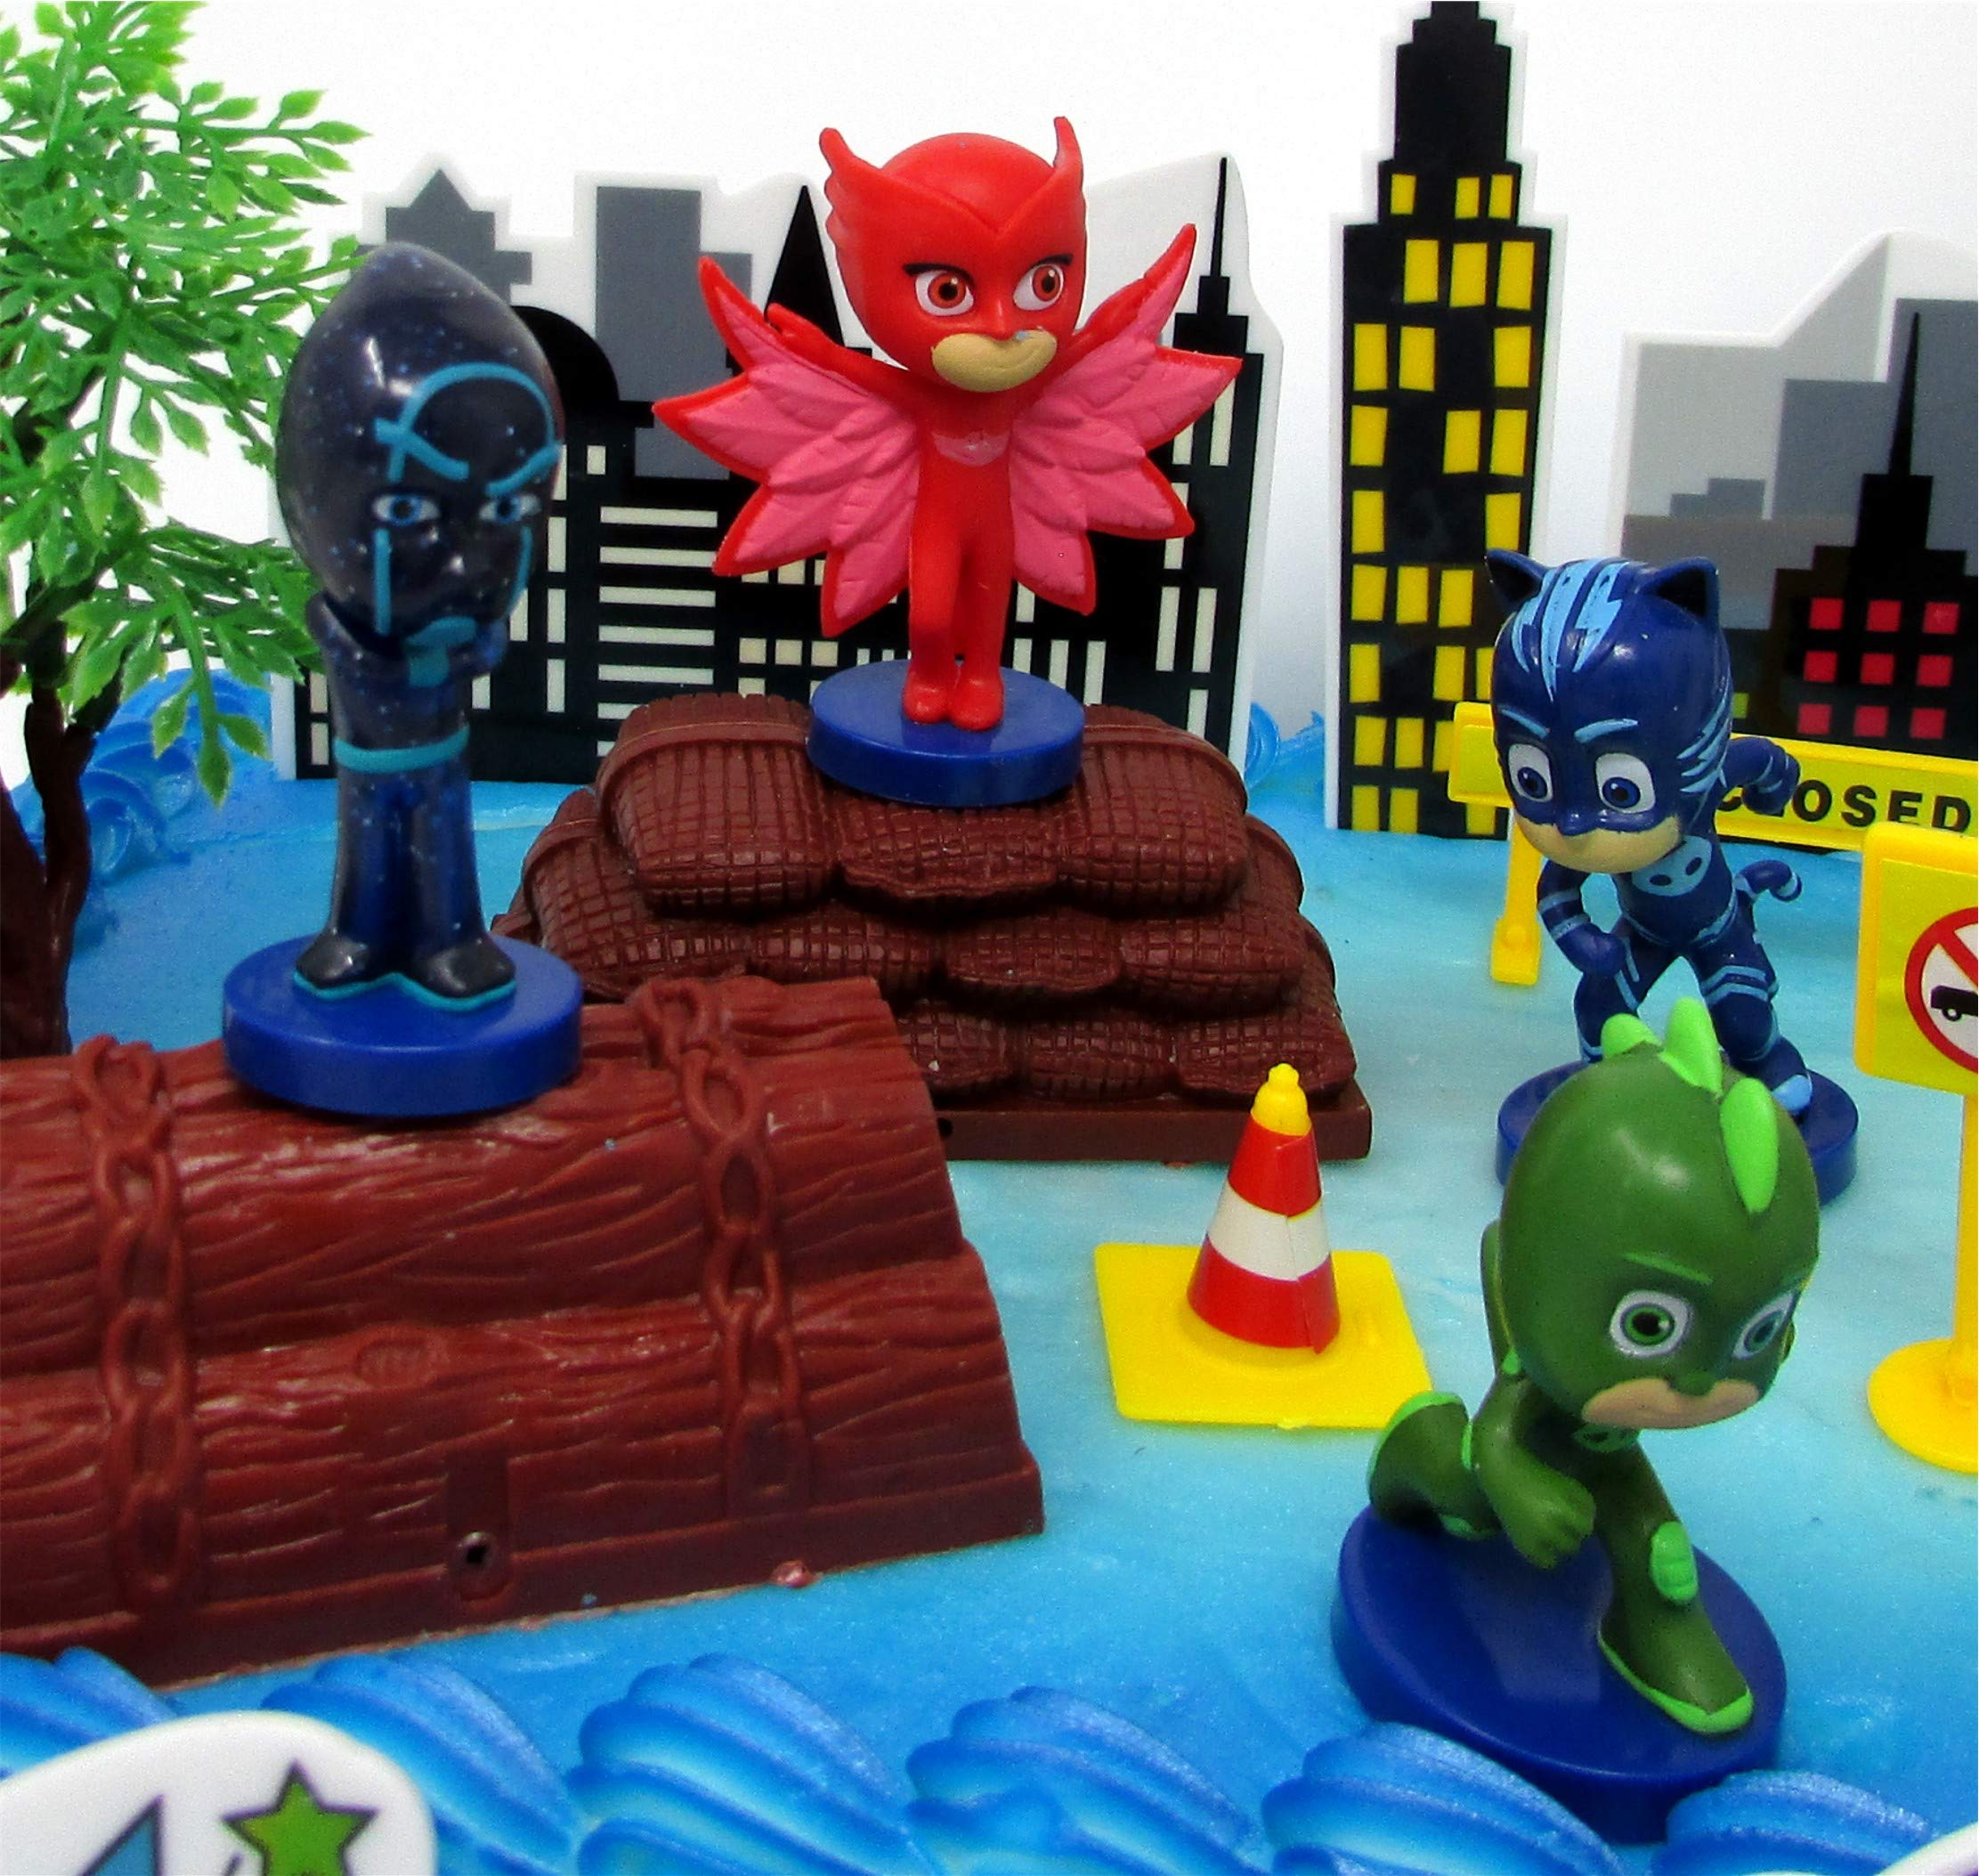 Super Hero PJ MASKS Deluxe Birthday Party Cake Topper Set Featuring Figures and Decorative Accessories by Cake Toppers (Image #2)